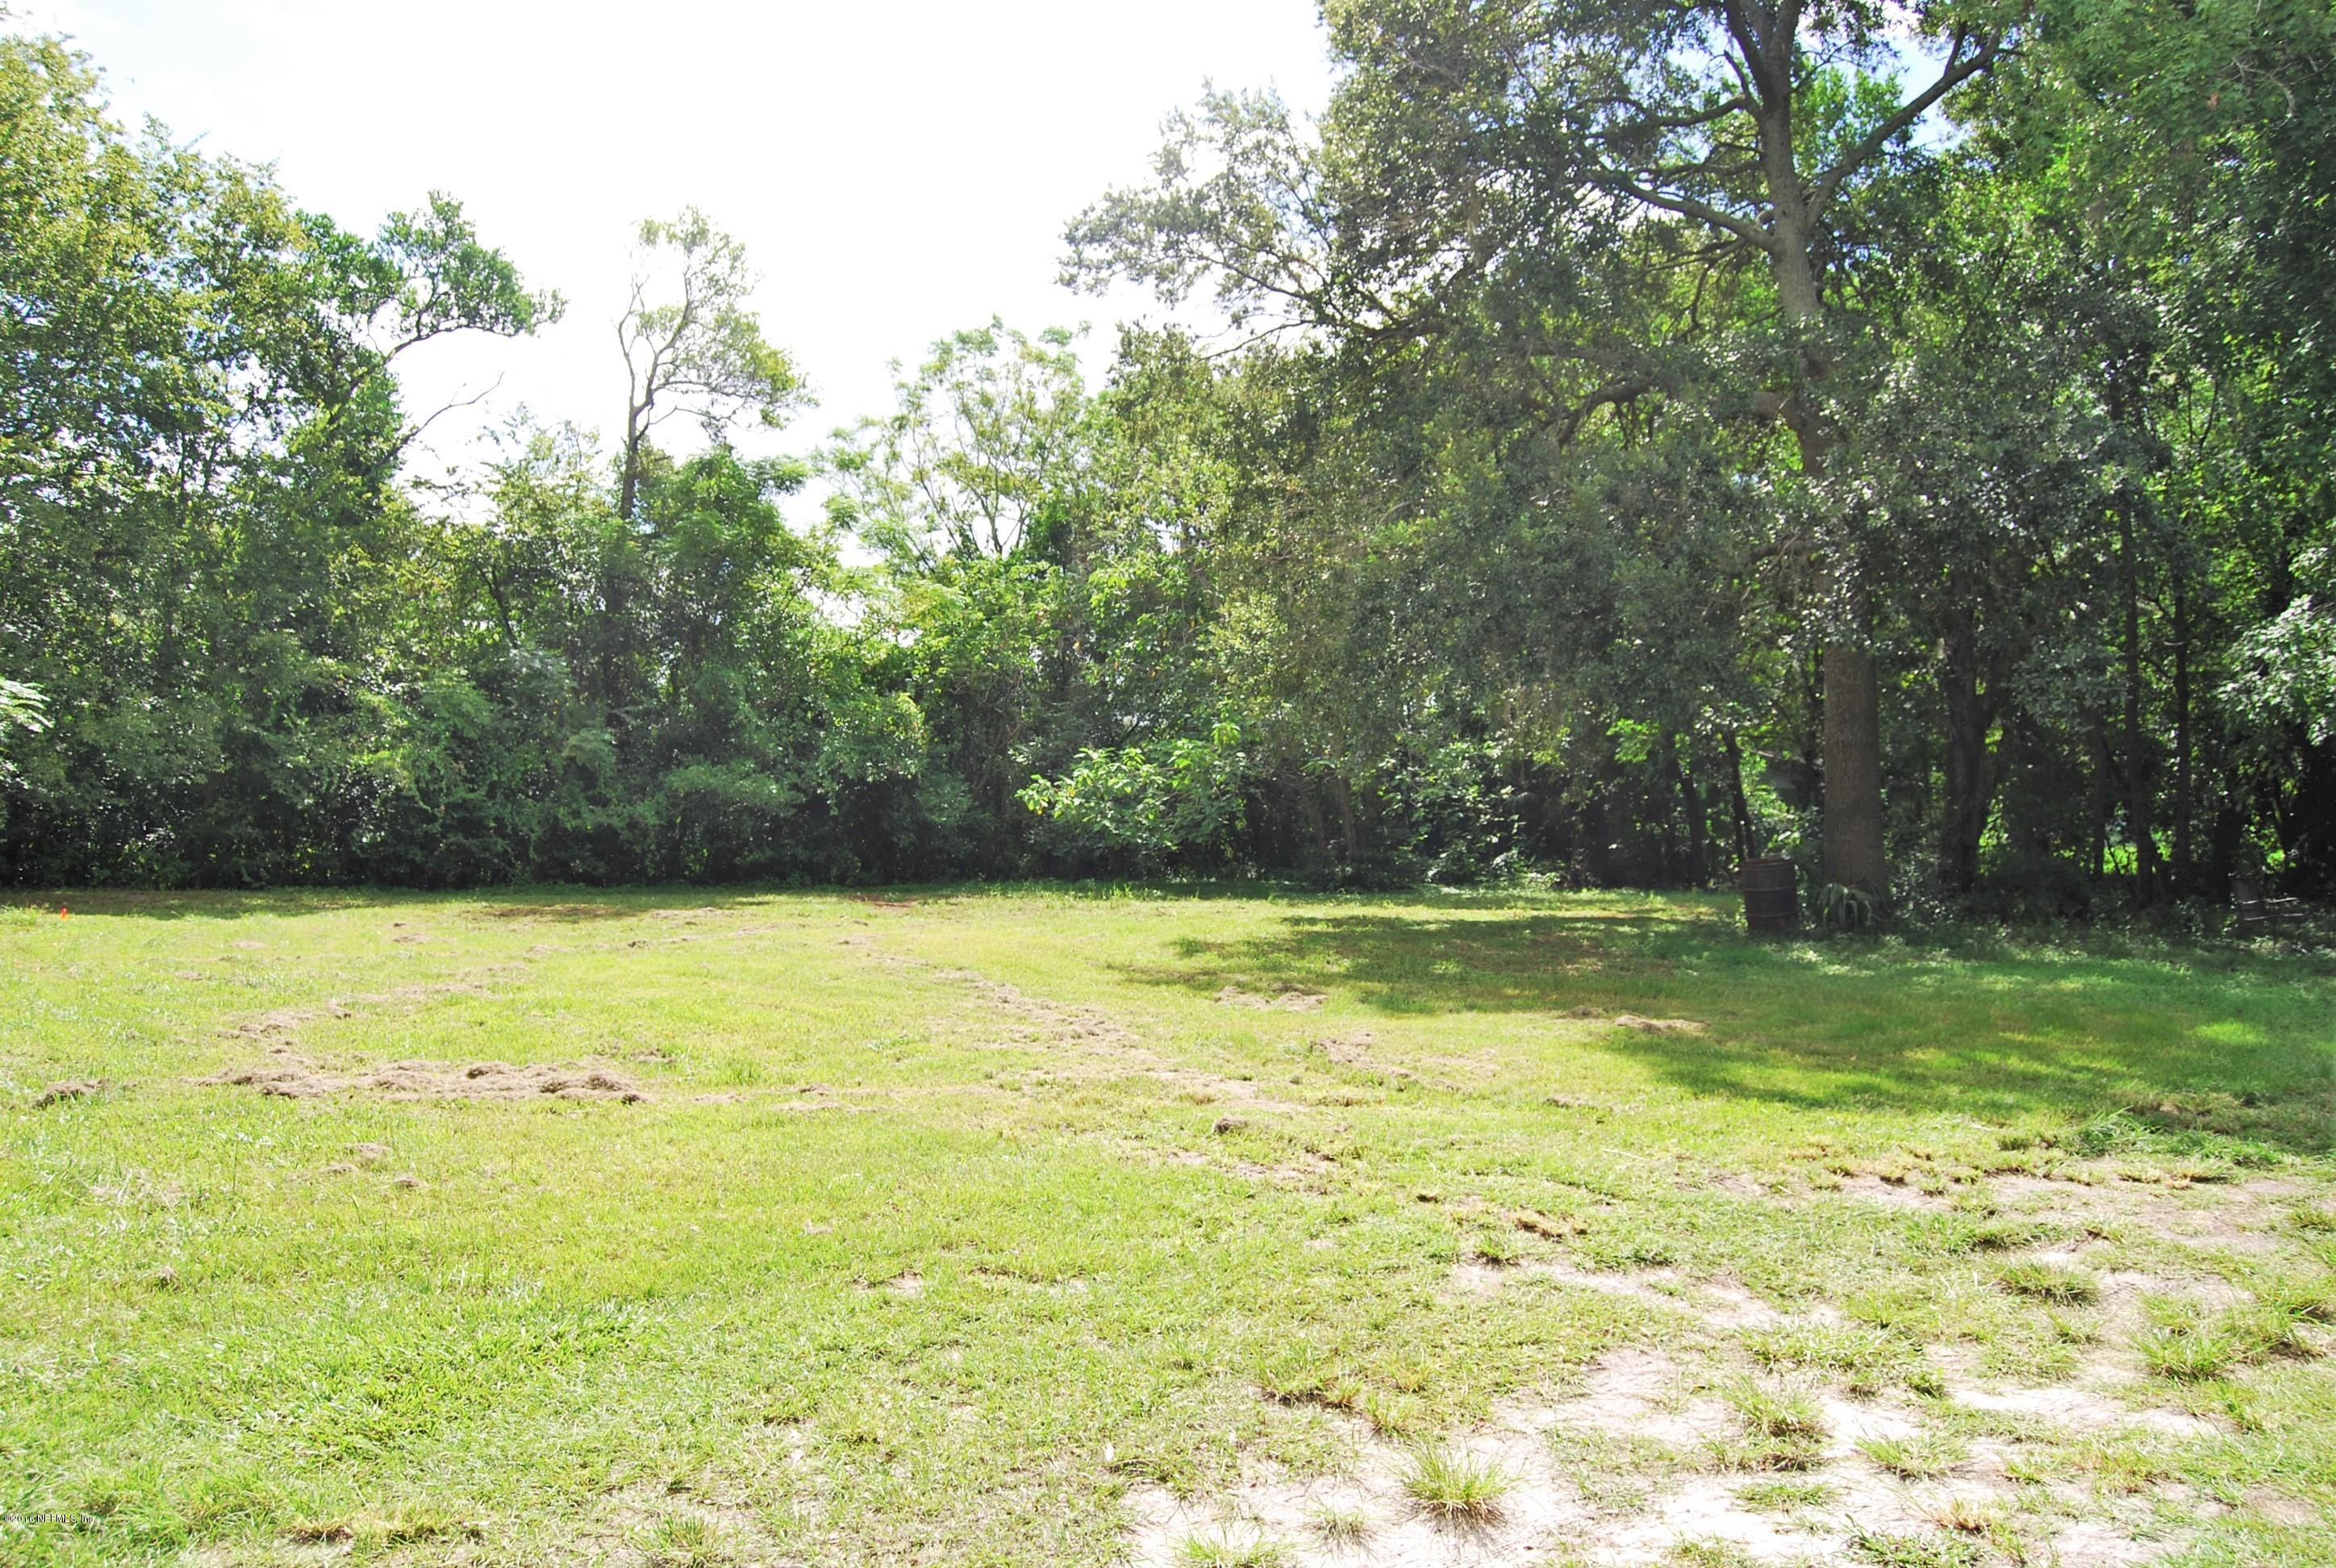 0 MERRIMAC, JACKSONVILLE, FLORIDA 32210, ,Vacant land,For sale,MERRIMAC,847823